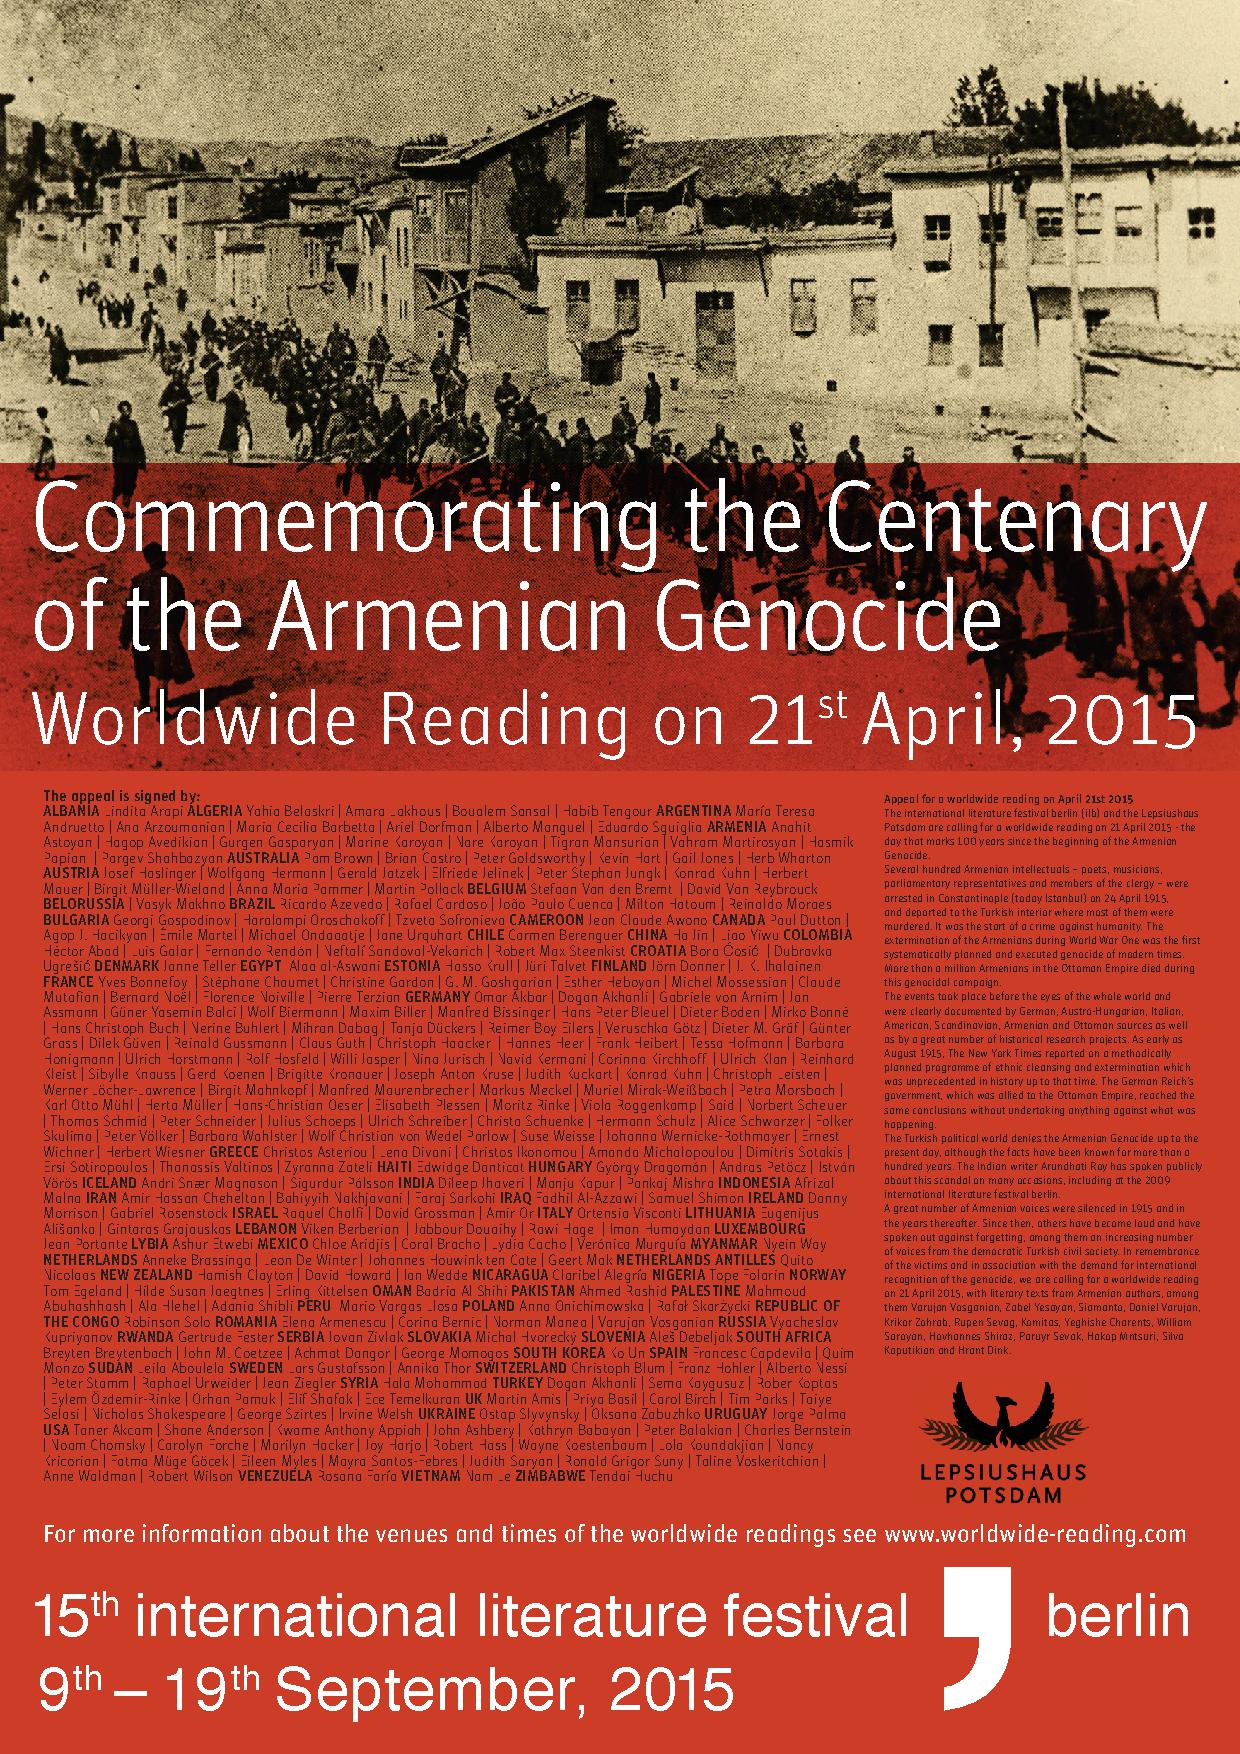 21.04.2015 - Worldwide Reading Commemorating the Centenary of the Armenian Genocide